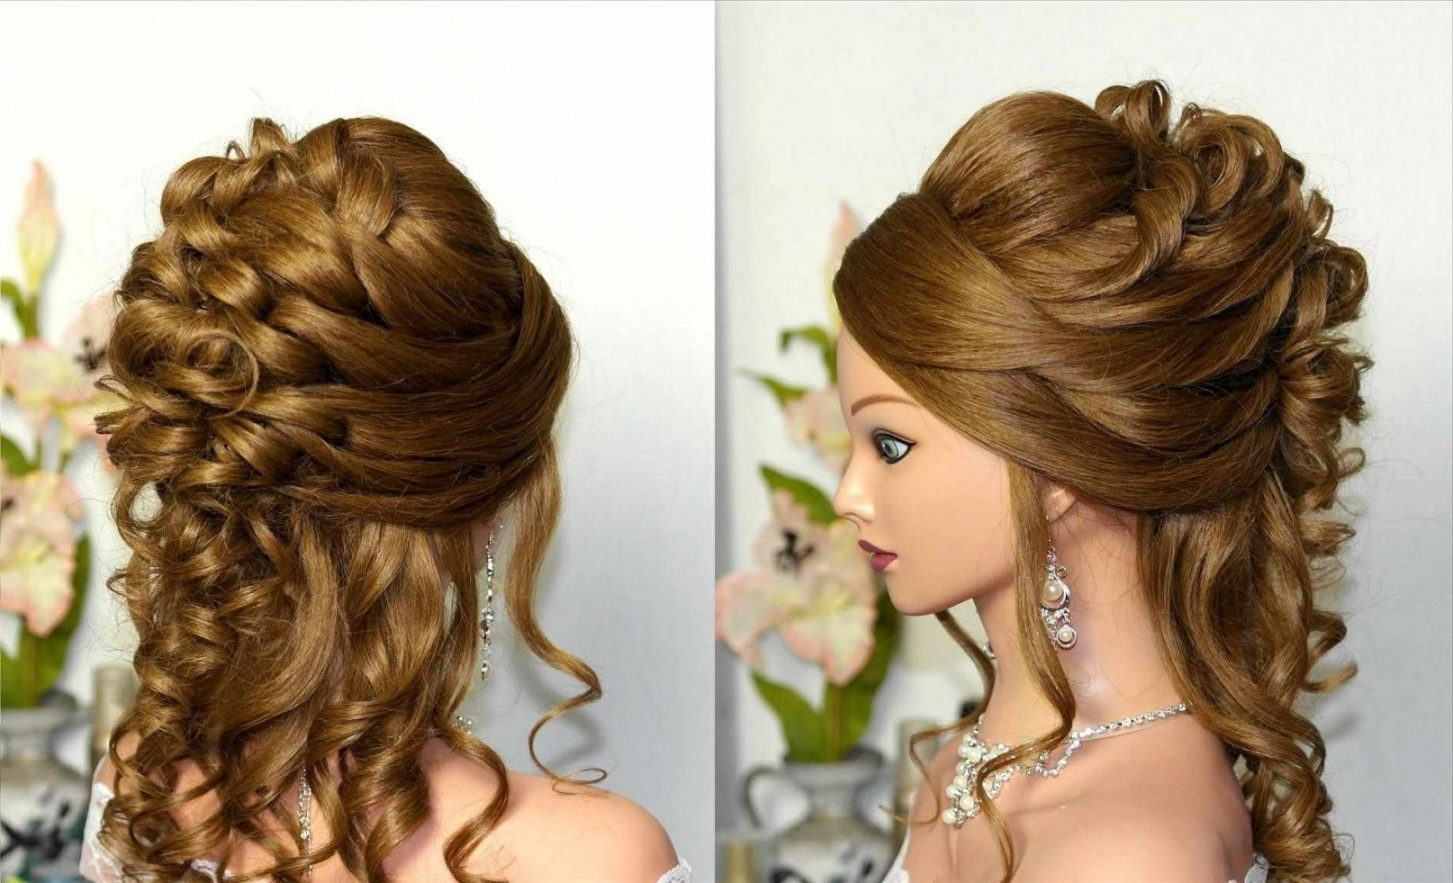 Prom Updo Hairstyles For Long Thick Hair Hairsstyles Impressive Regarding Updo Hairstyles For Thick Hair (View 12 of 15)